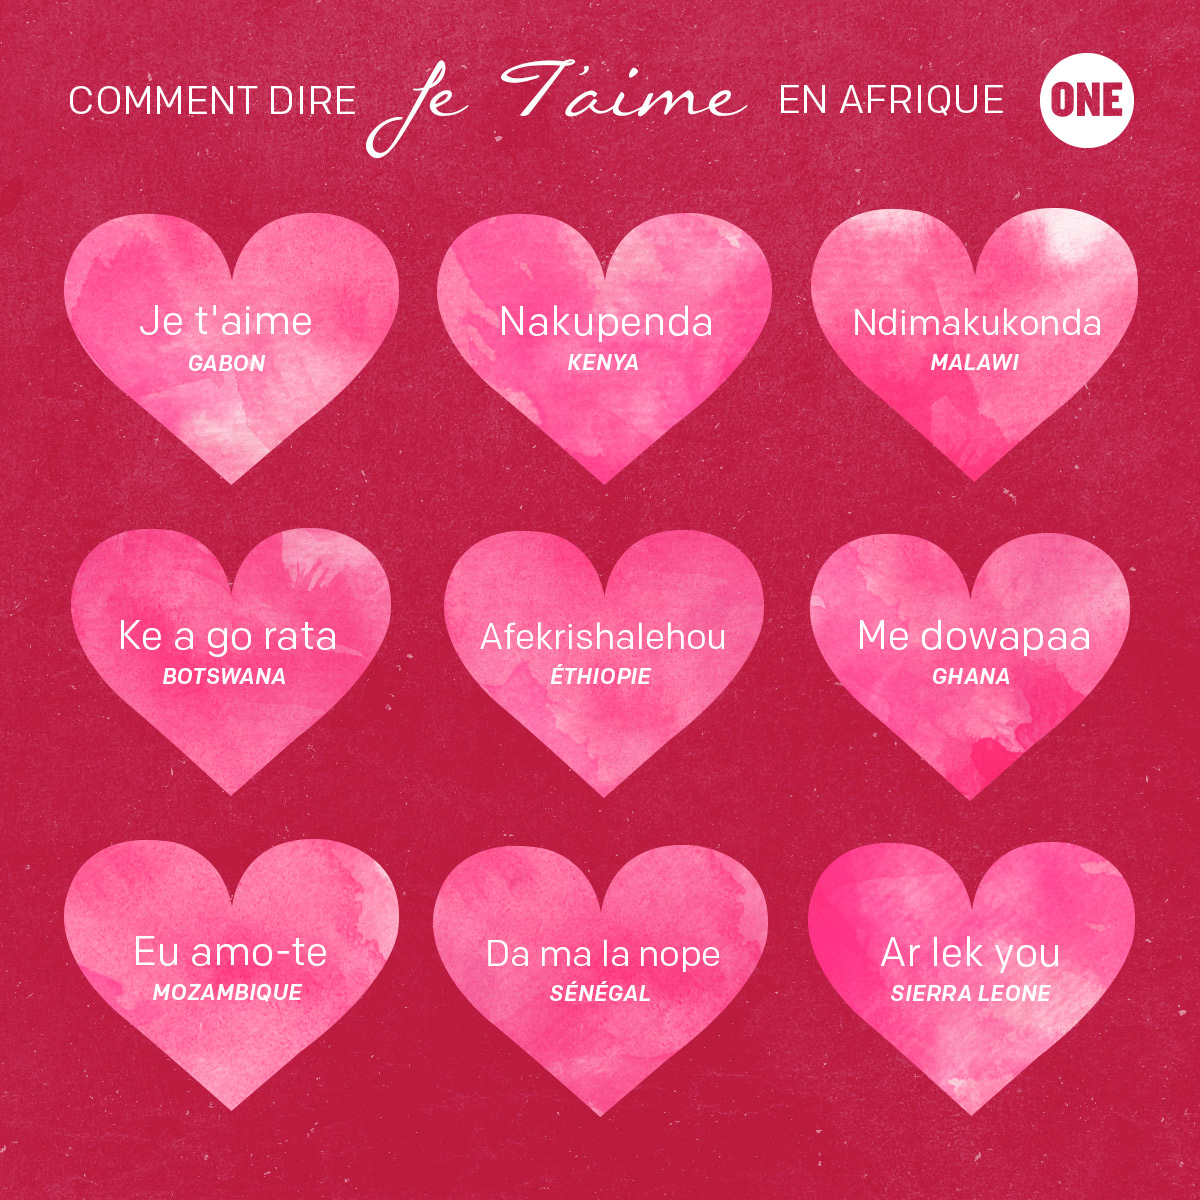 22US2014(valentine-share-graphic)_9Languages_FRENCH